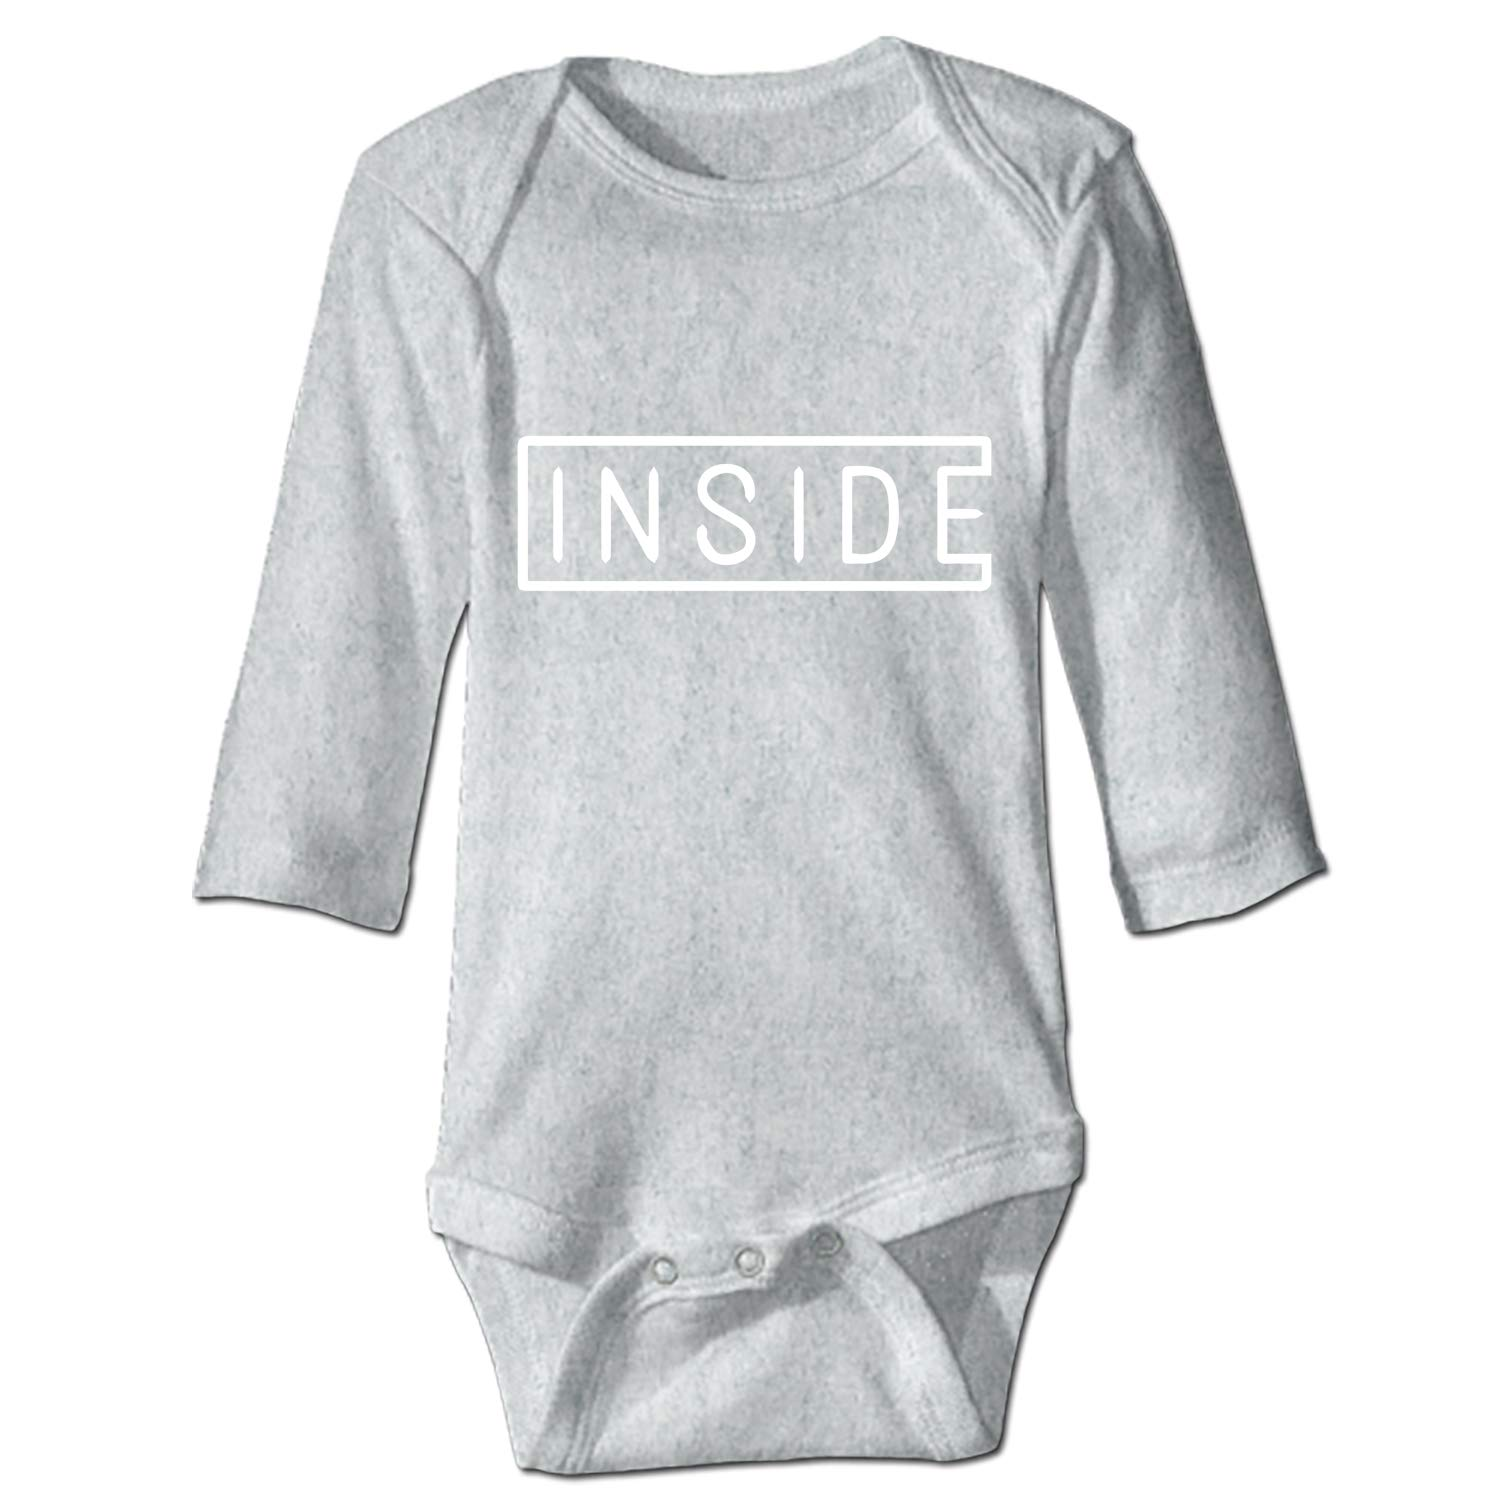 Cotton Bodysuits We Missed You YSKHDBC Baby Onepiece Keep Calm and Welcome Back